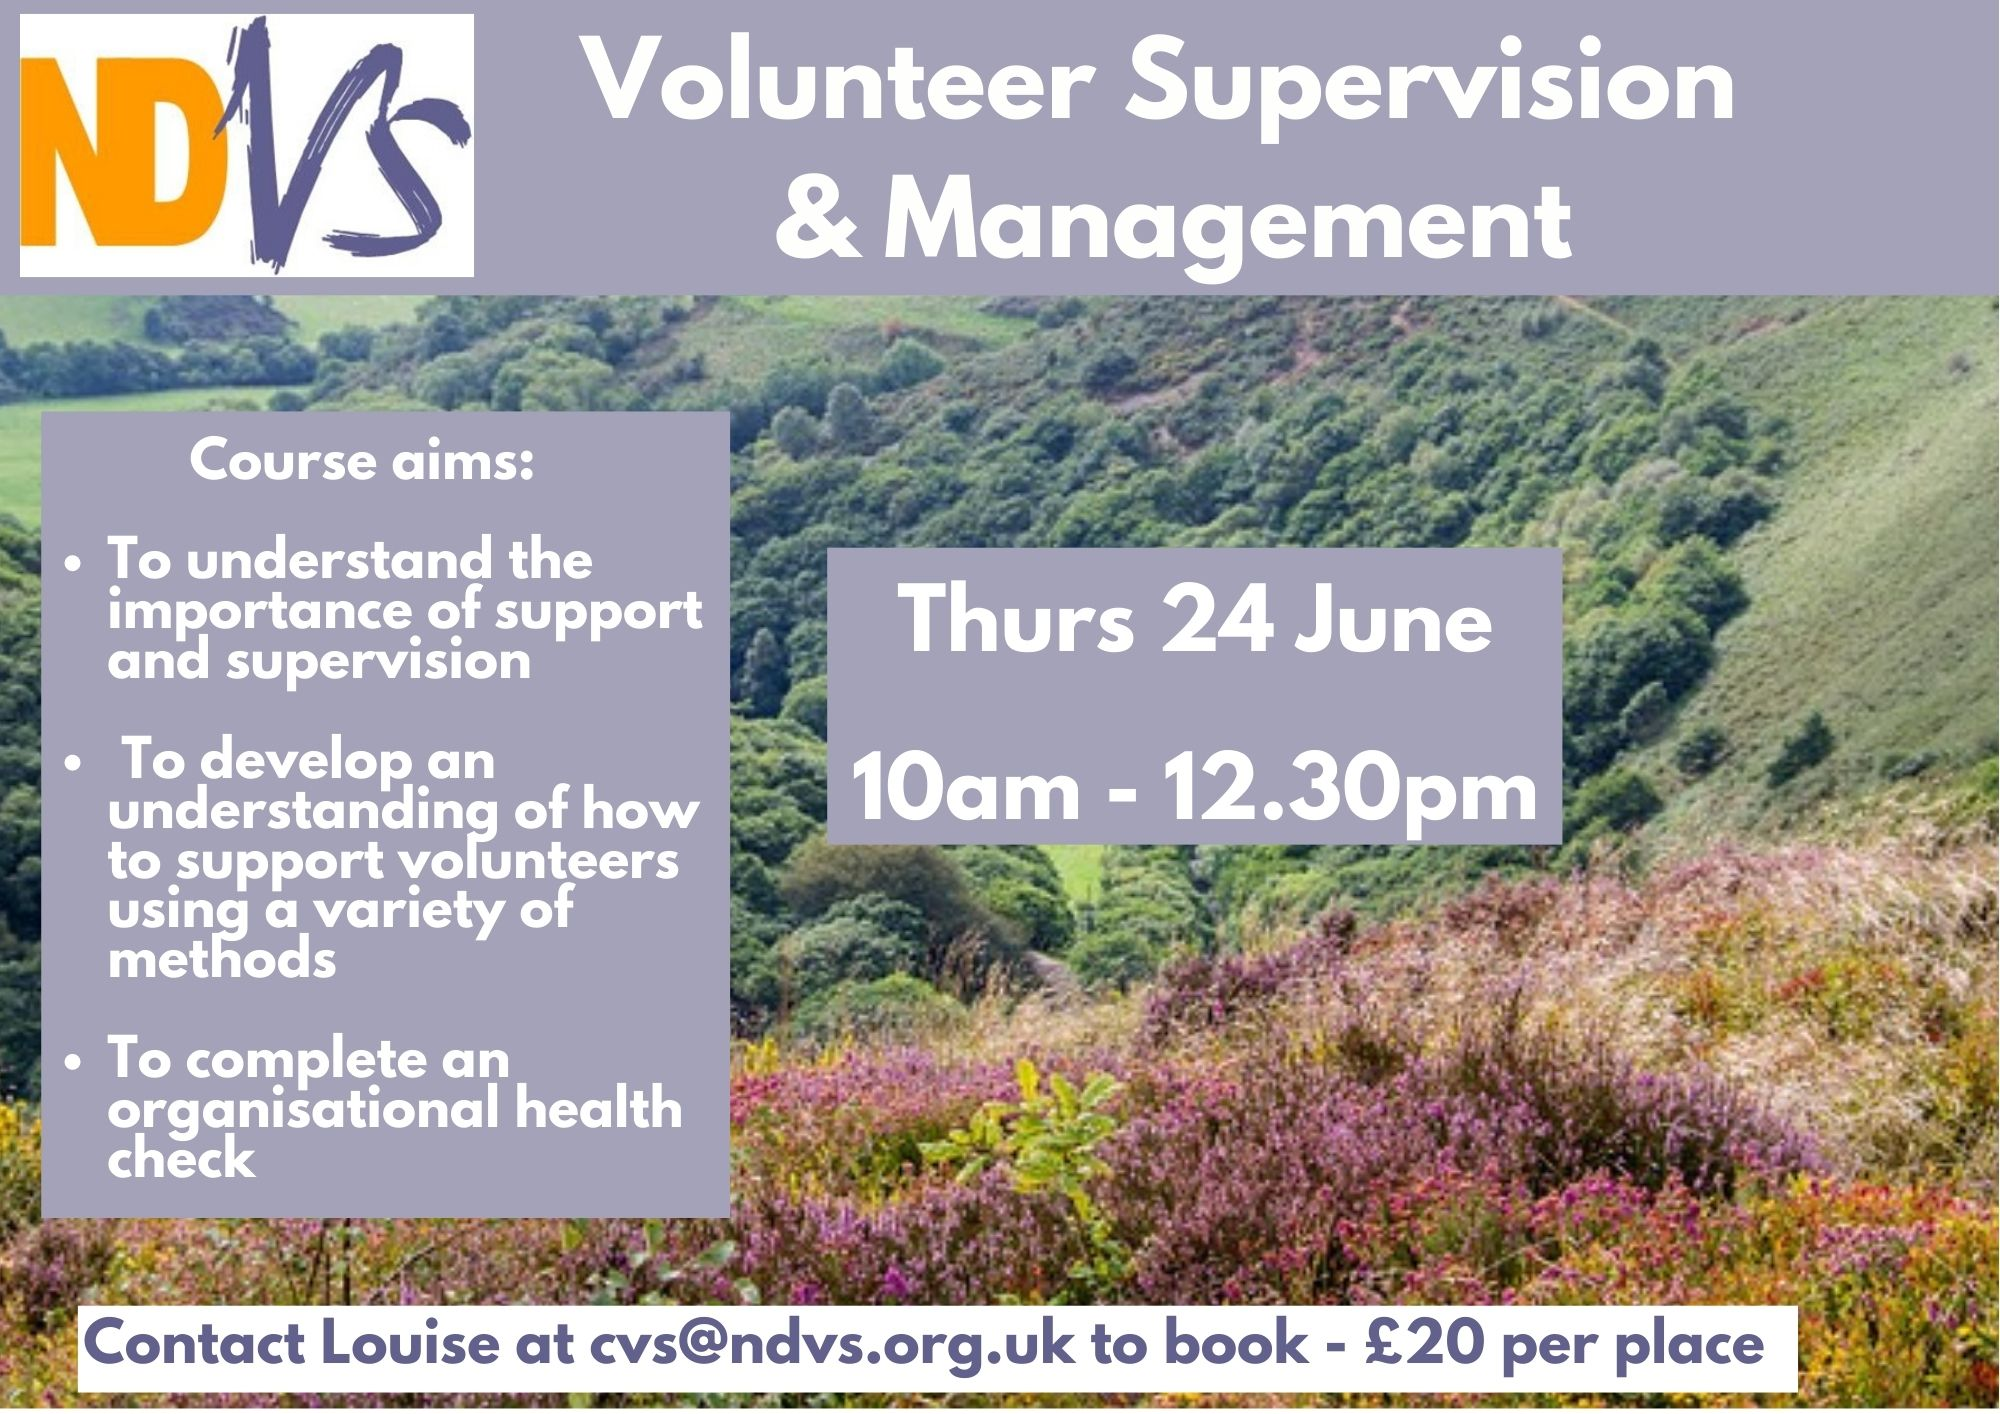 Training - Vol Supervision flyer May 21pg